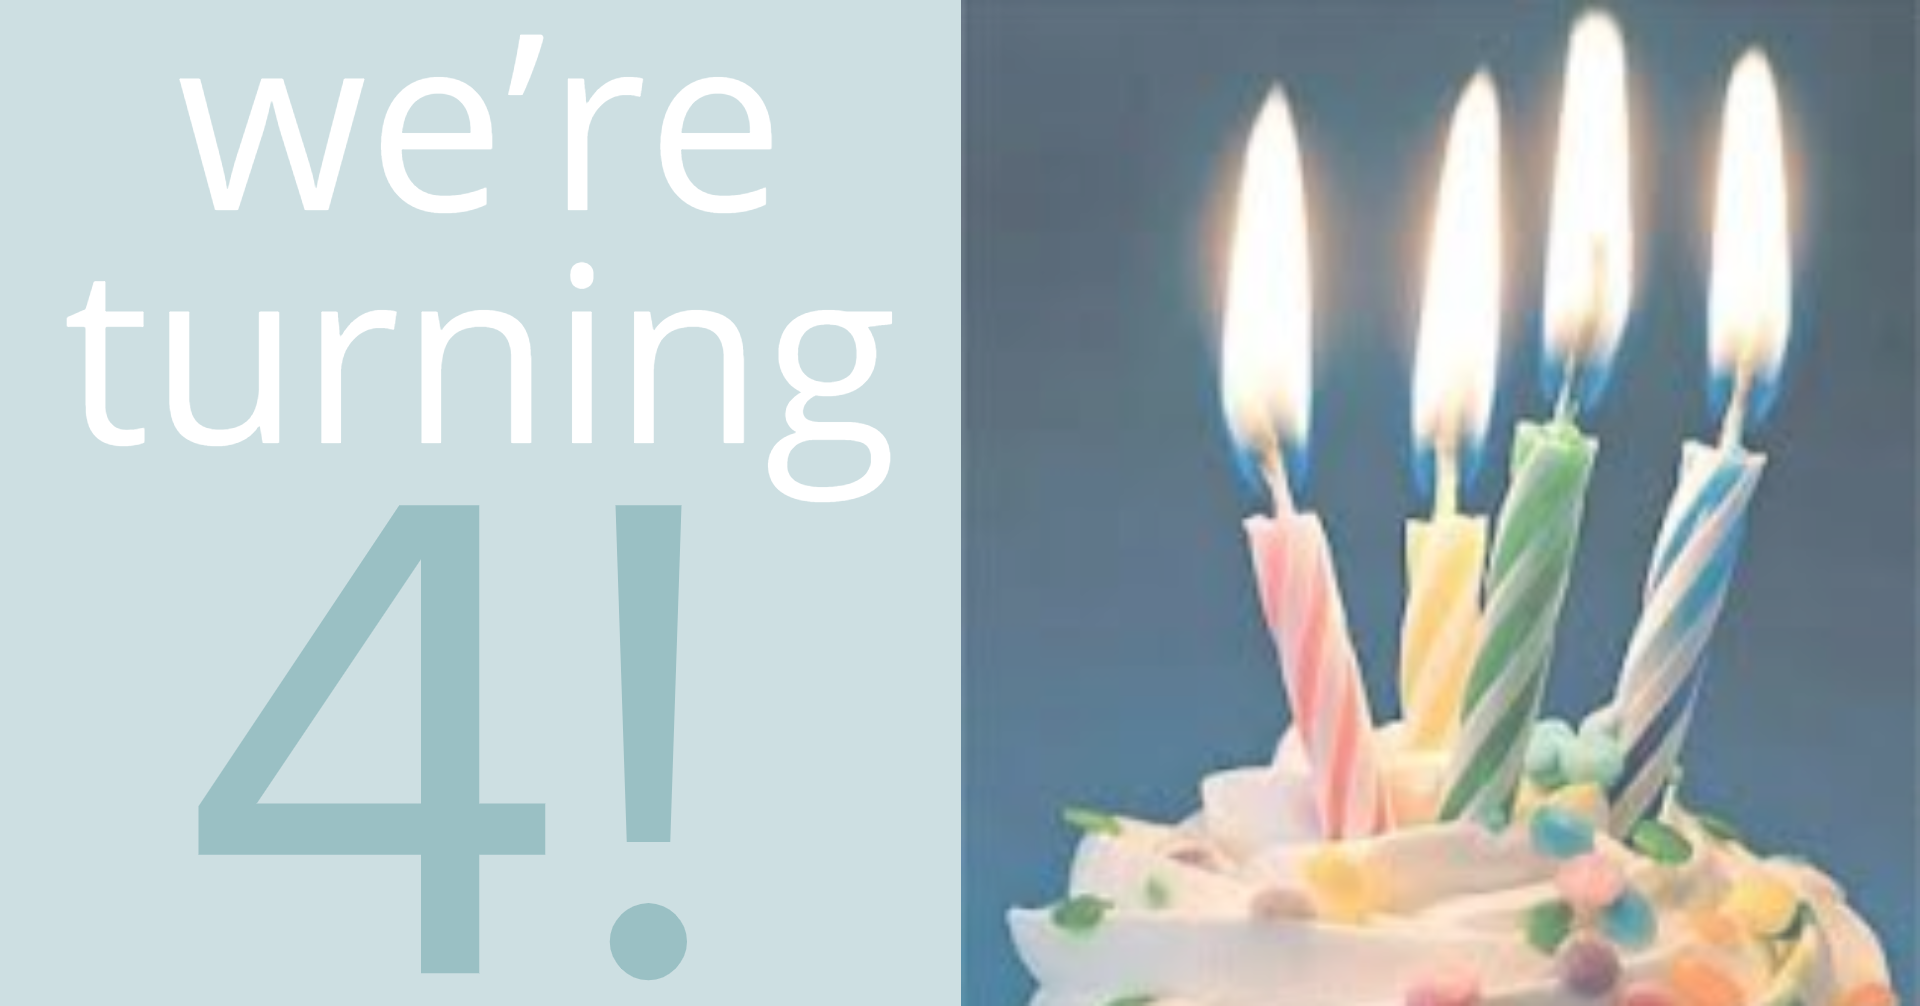 Come celebrate with us! - When: Saturday, July 27th, 2-4pmWhere: At Breathe